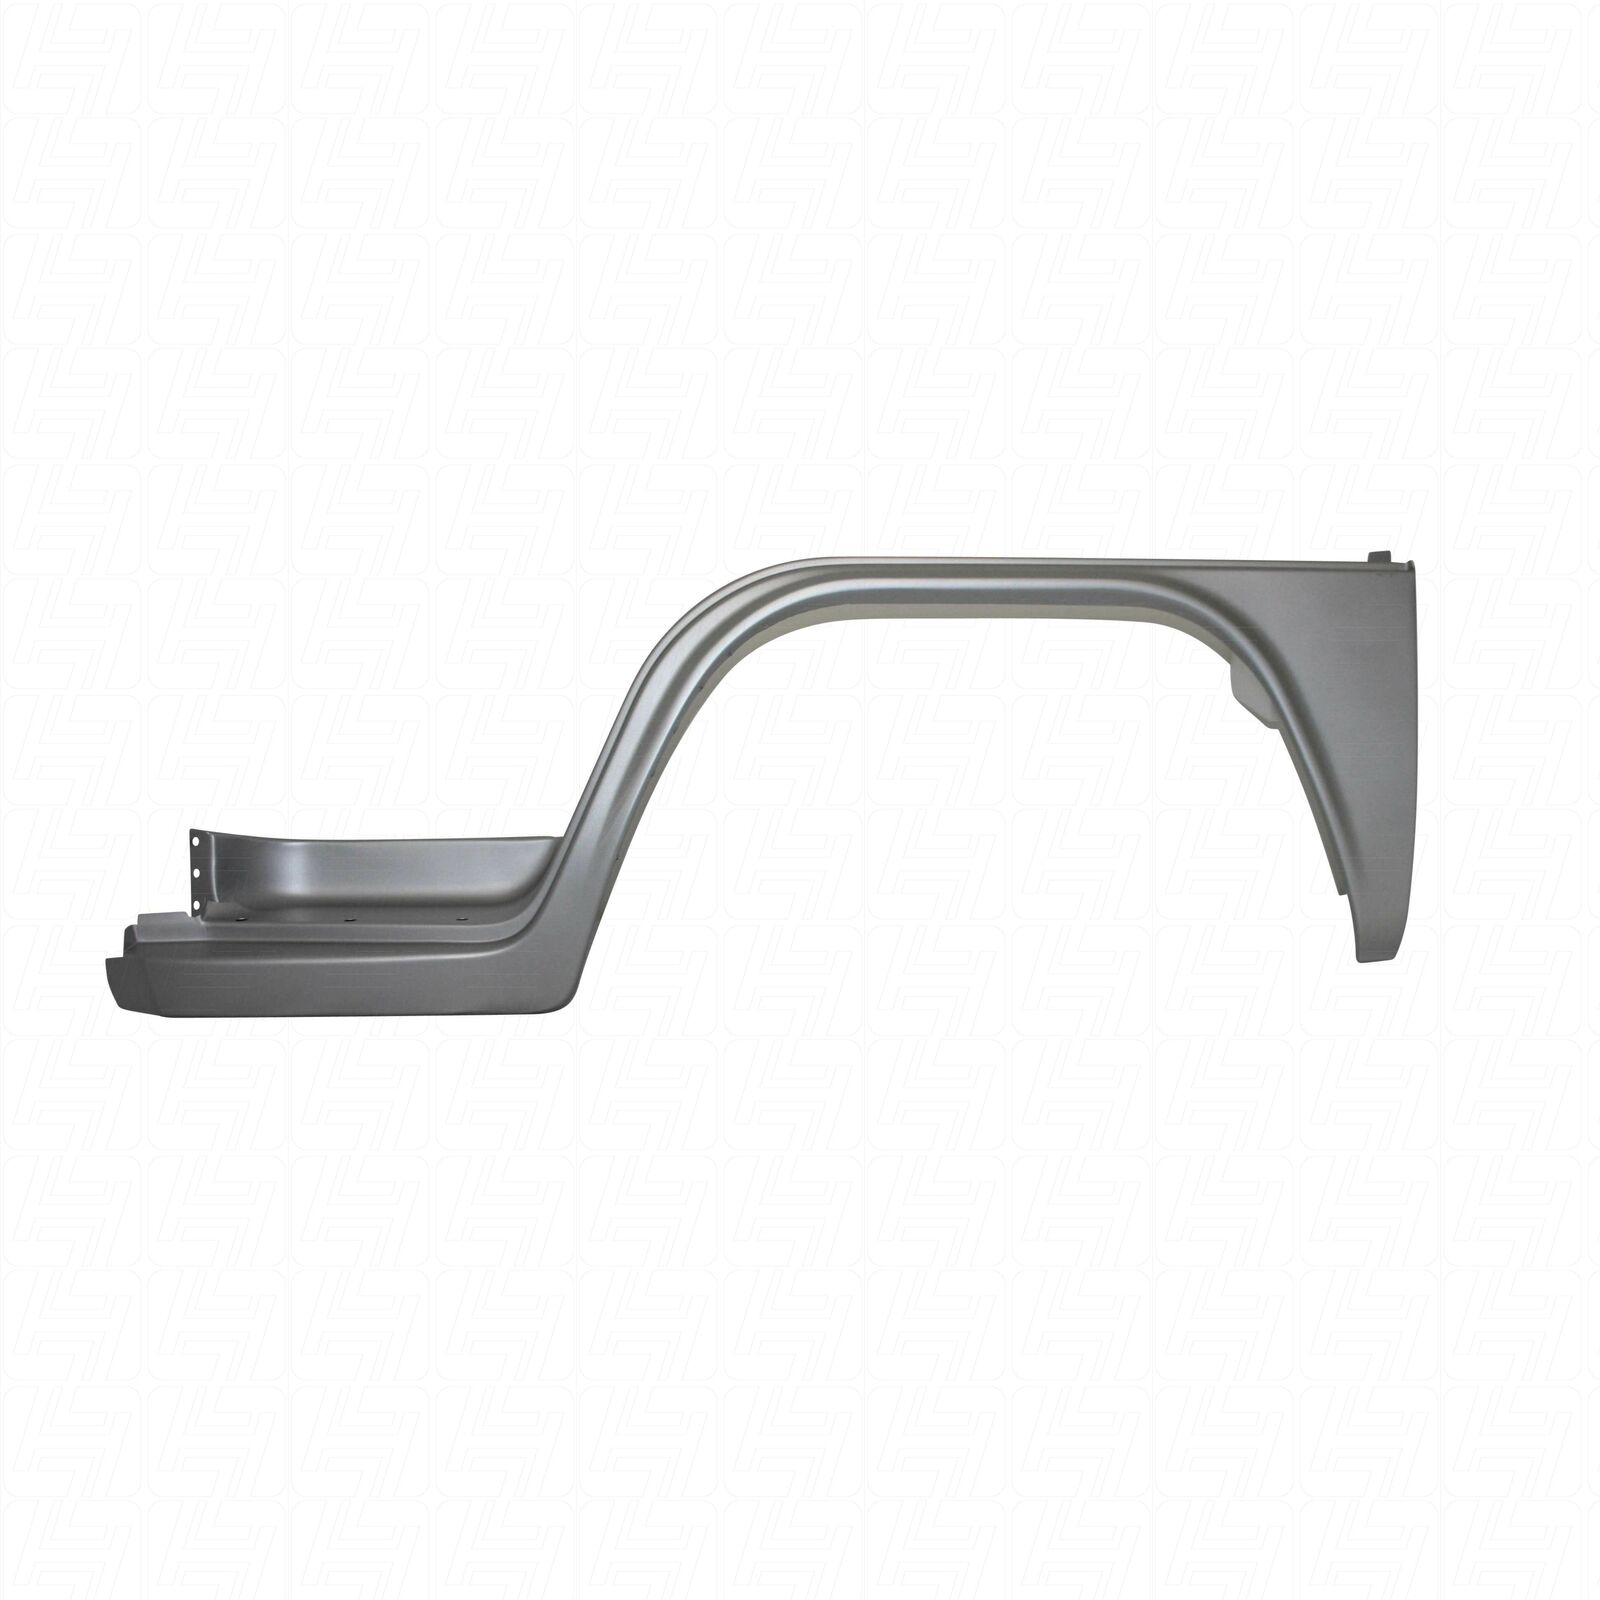 T2 Complete Front Wheel Arch Left for Baywindow 1972-1979